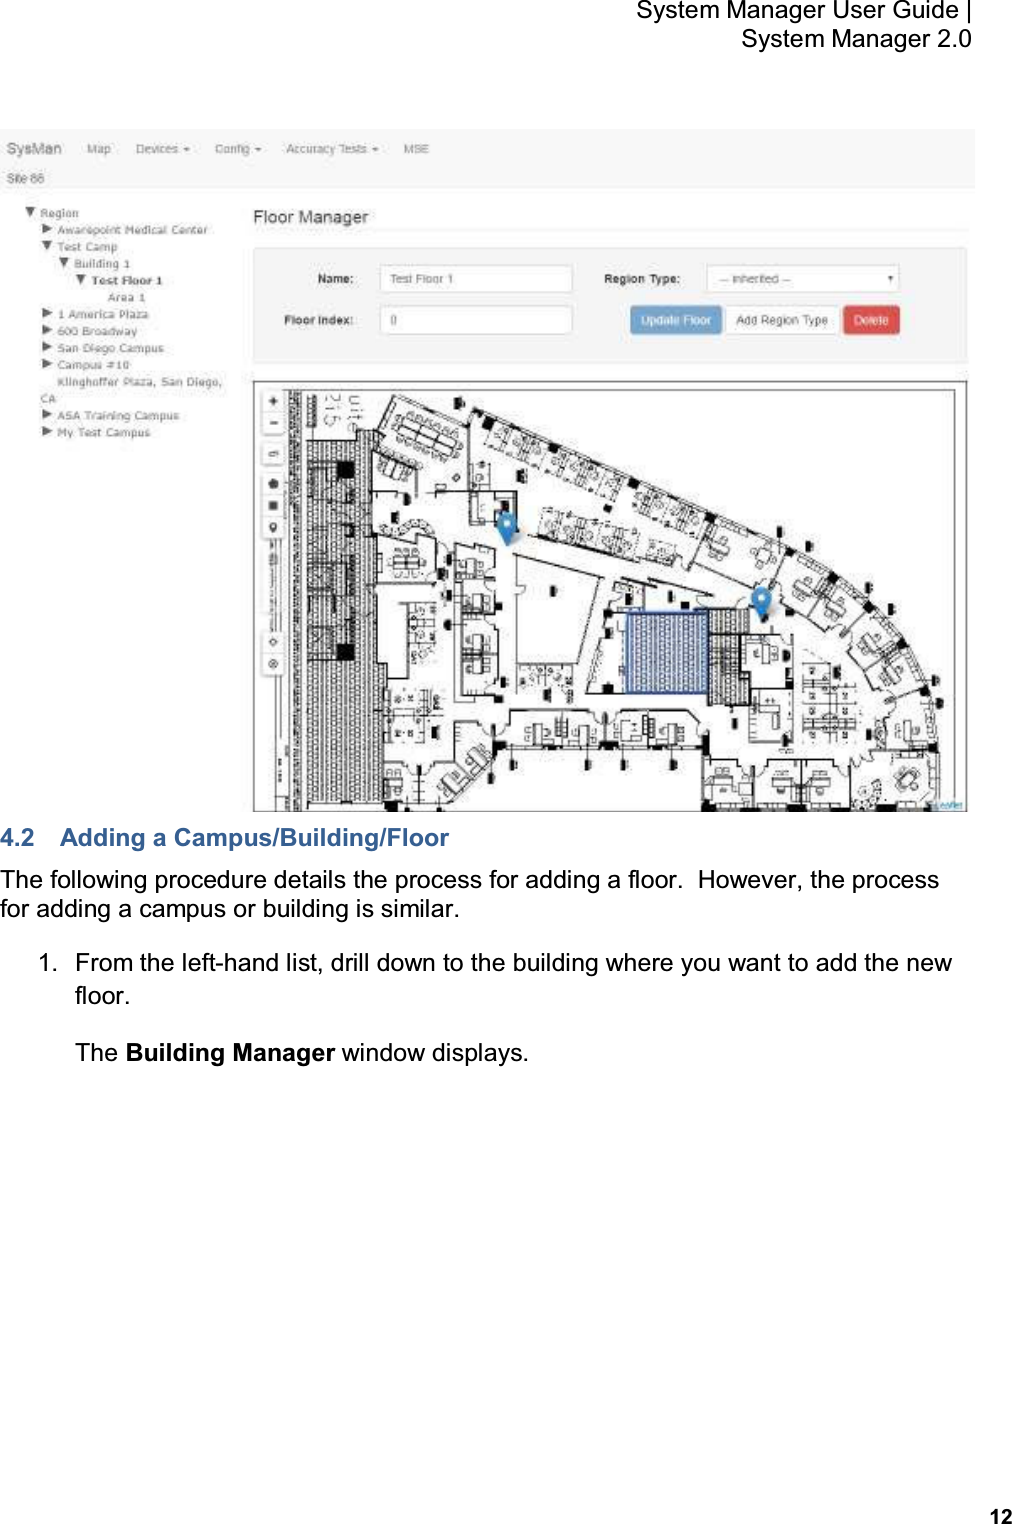 12 System Manager User Guide    System Manager 2.0  4.2  Adding a Campus/Building/Floor The following procedure details the process for adding a floor.  However, the process for adding a campus or building is similar. 1.  From the left-hand list, drill down to the building where you want to add the new floor. The Building Manager window displays.